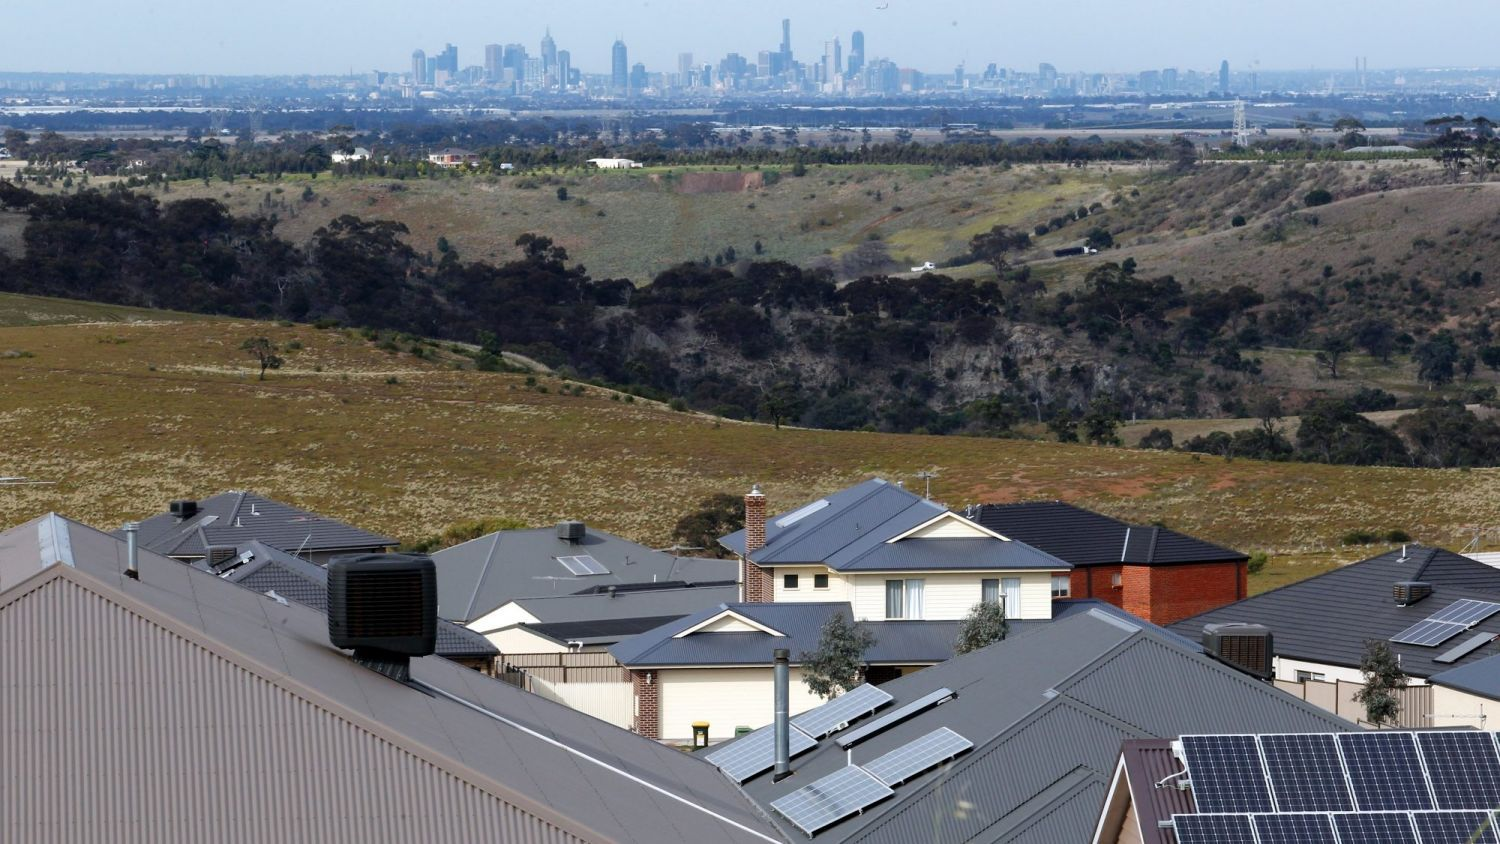 Property Investors And Tenants To Be Worse Off Under Law Reforms Real Estate Institute Of Victoria Warns Property Investor Real Estate Real Estate Investing